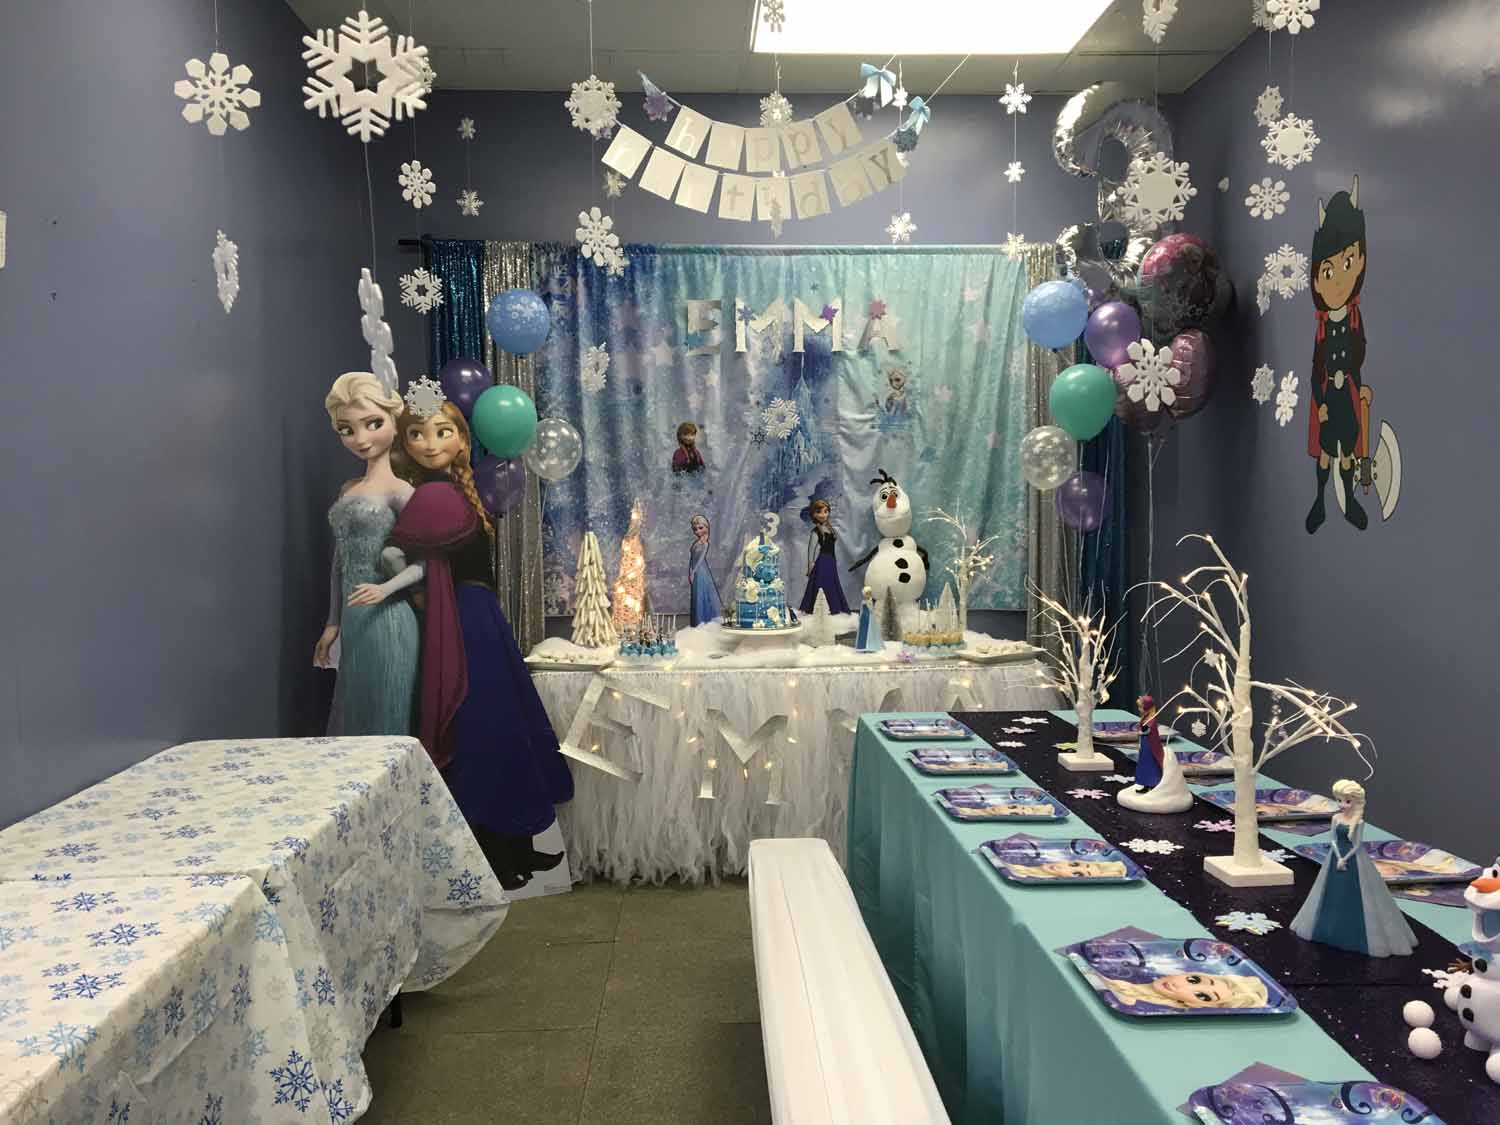 frozen themed birthday party in orlando florida - princesses and princes (6).jpg